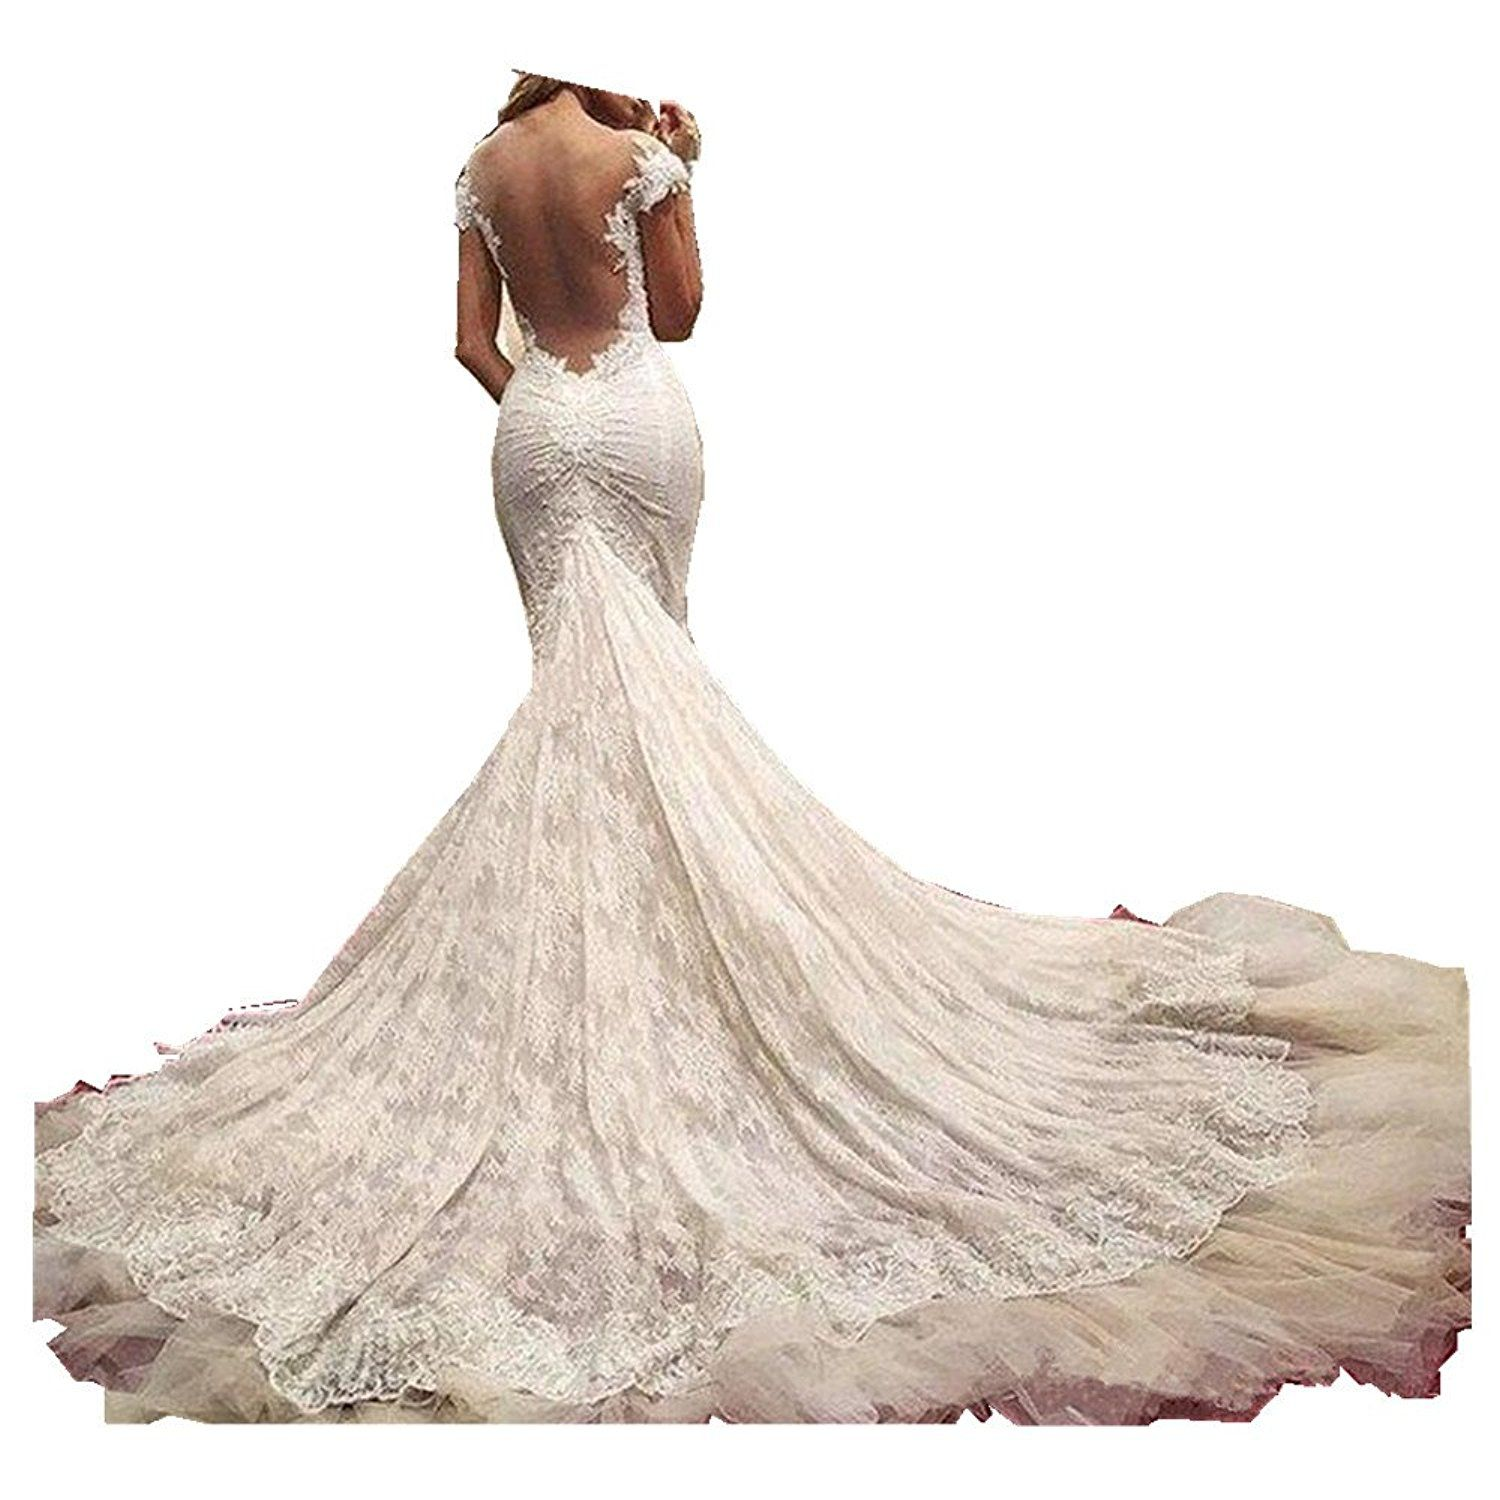 Uryouthstyle Off Shoulder Bridal Gowns Lace Mermaid Chapel